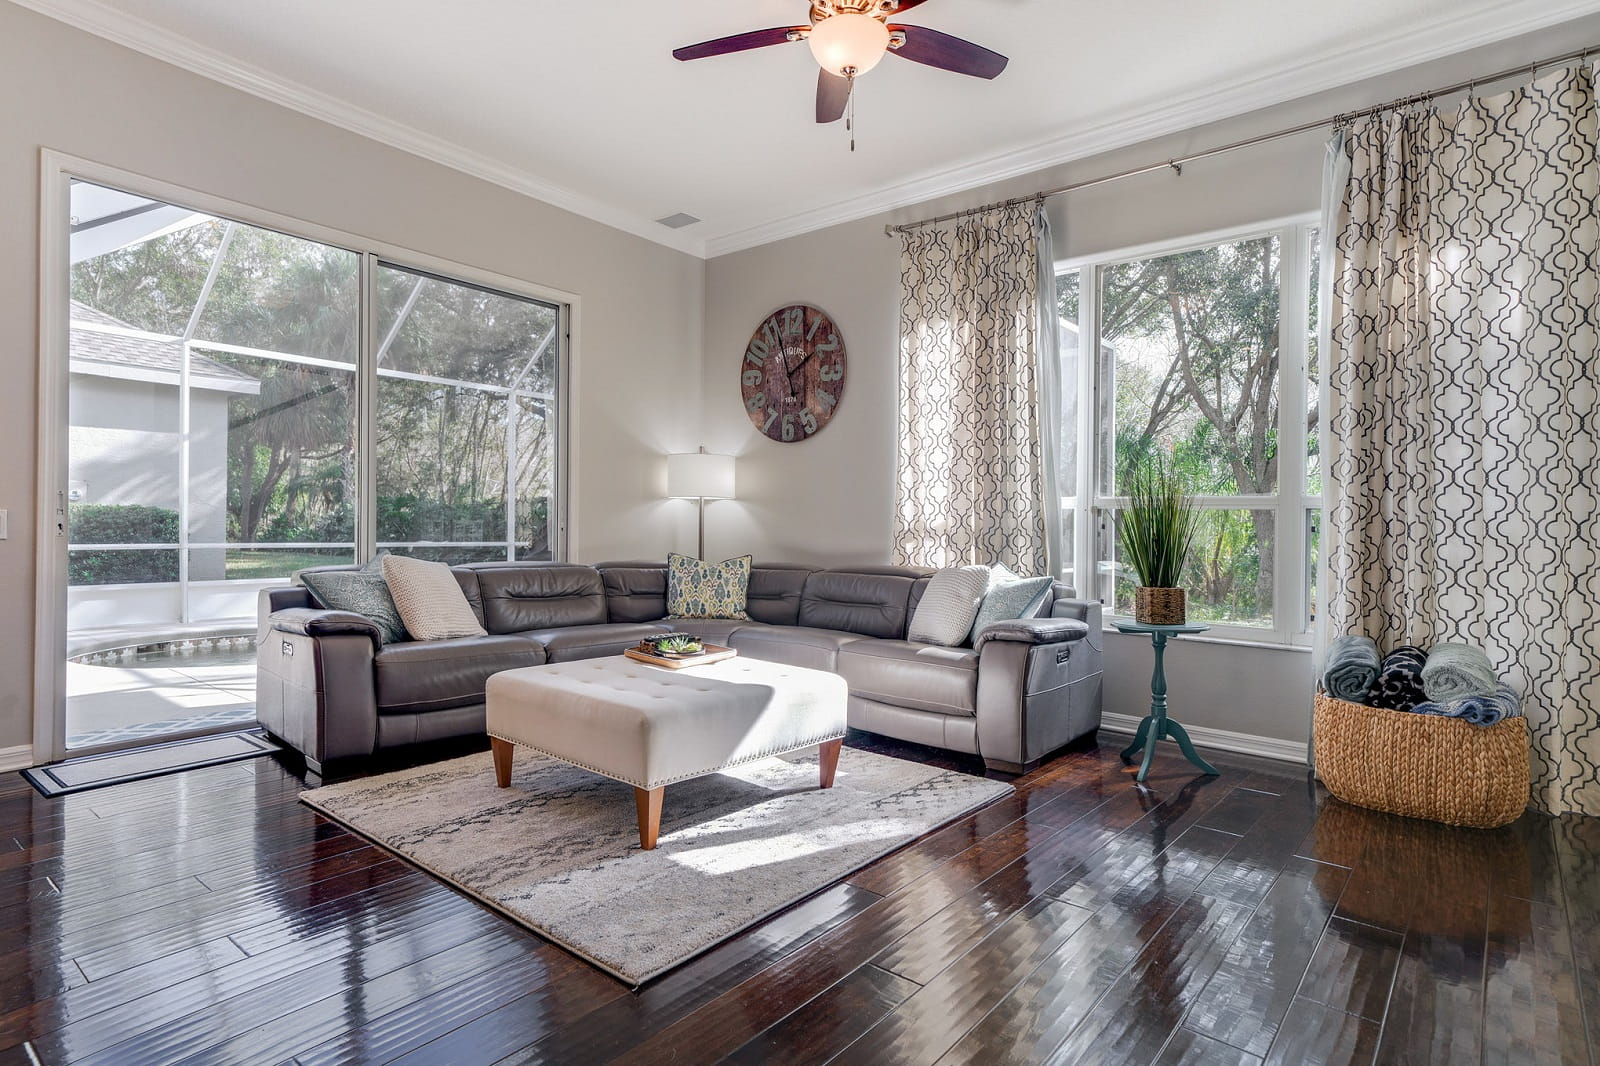 Real Estate Photography in Bradenton - FL - USA - Living Area View